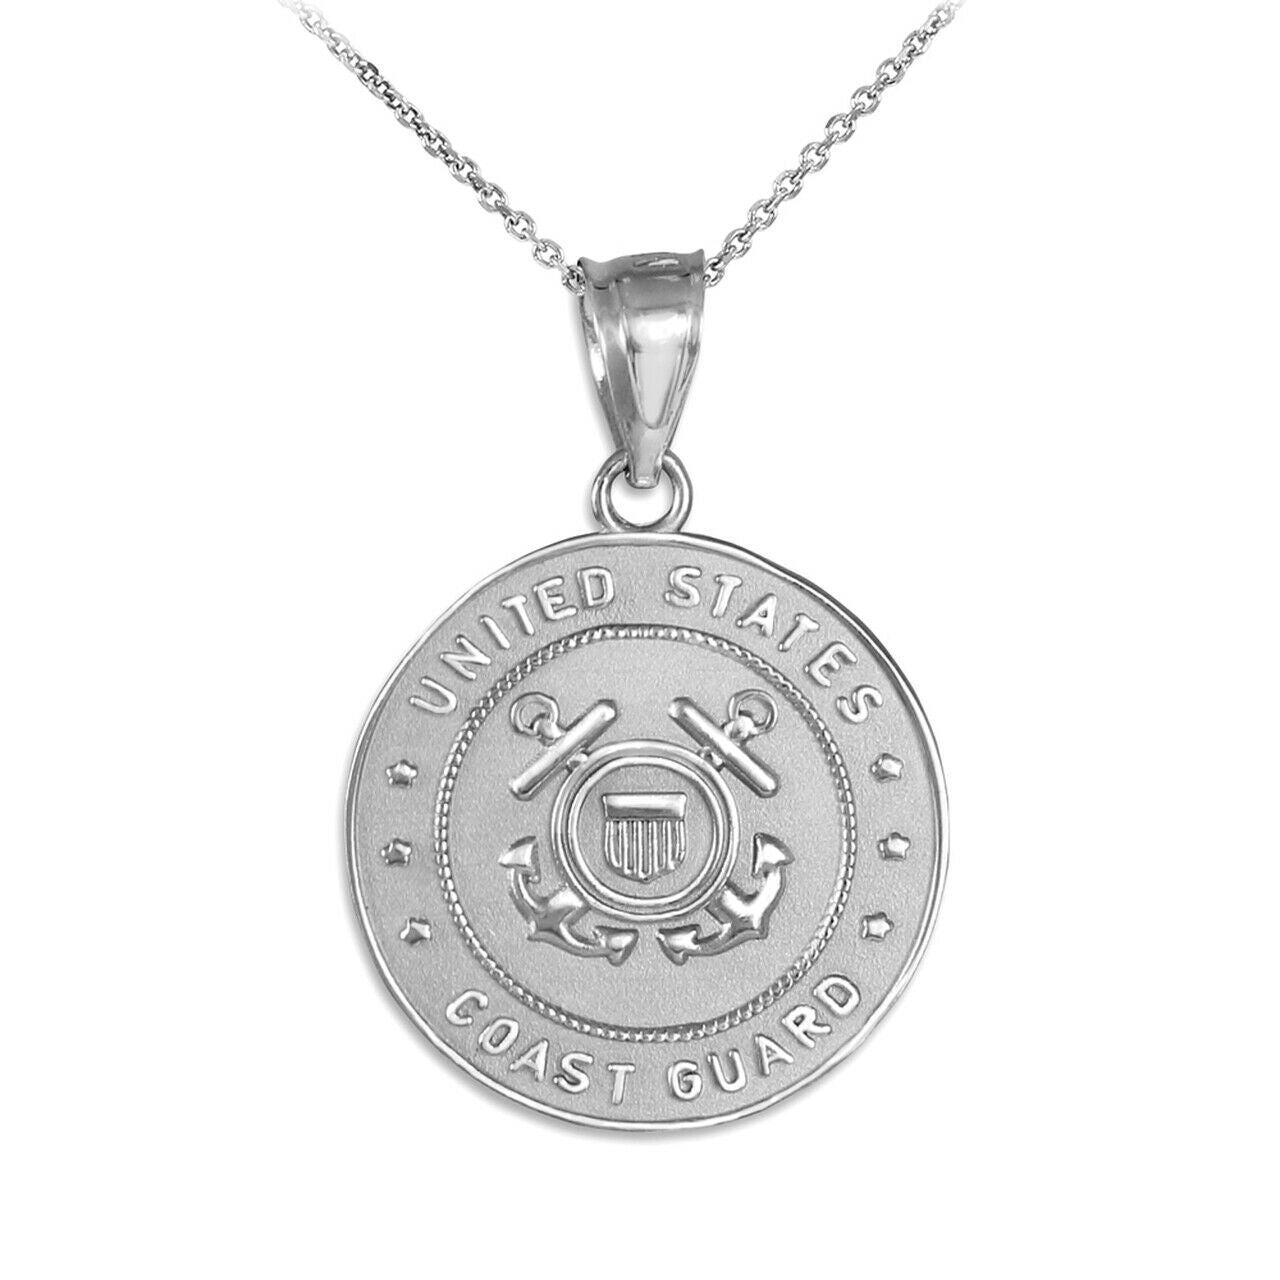 US Coast Guard Coin Pendant Necklace 925 Sterling Silver Made In USA